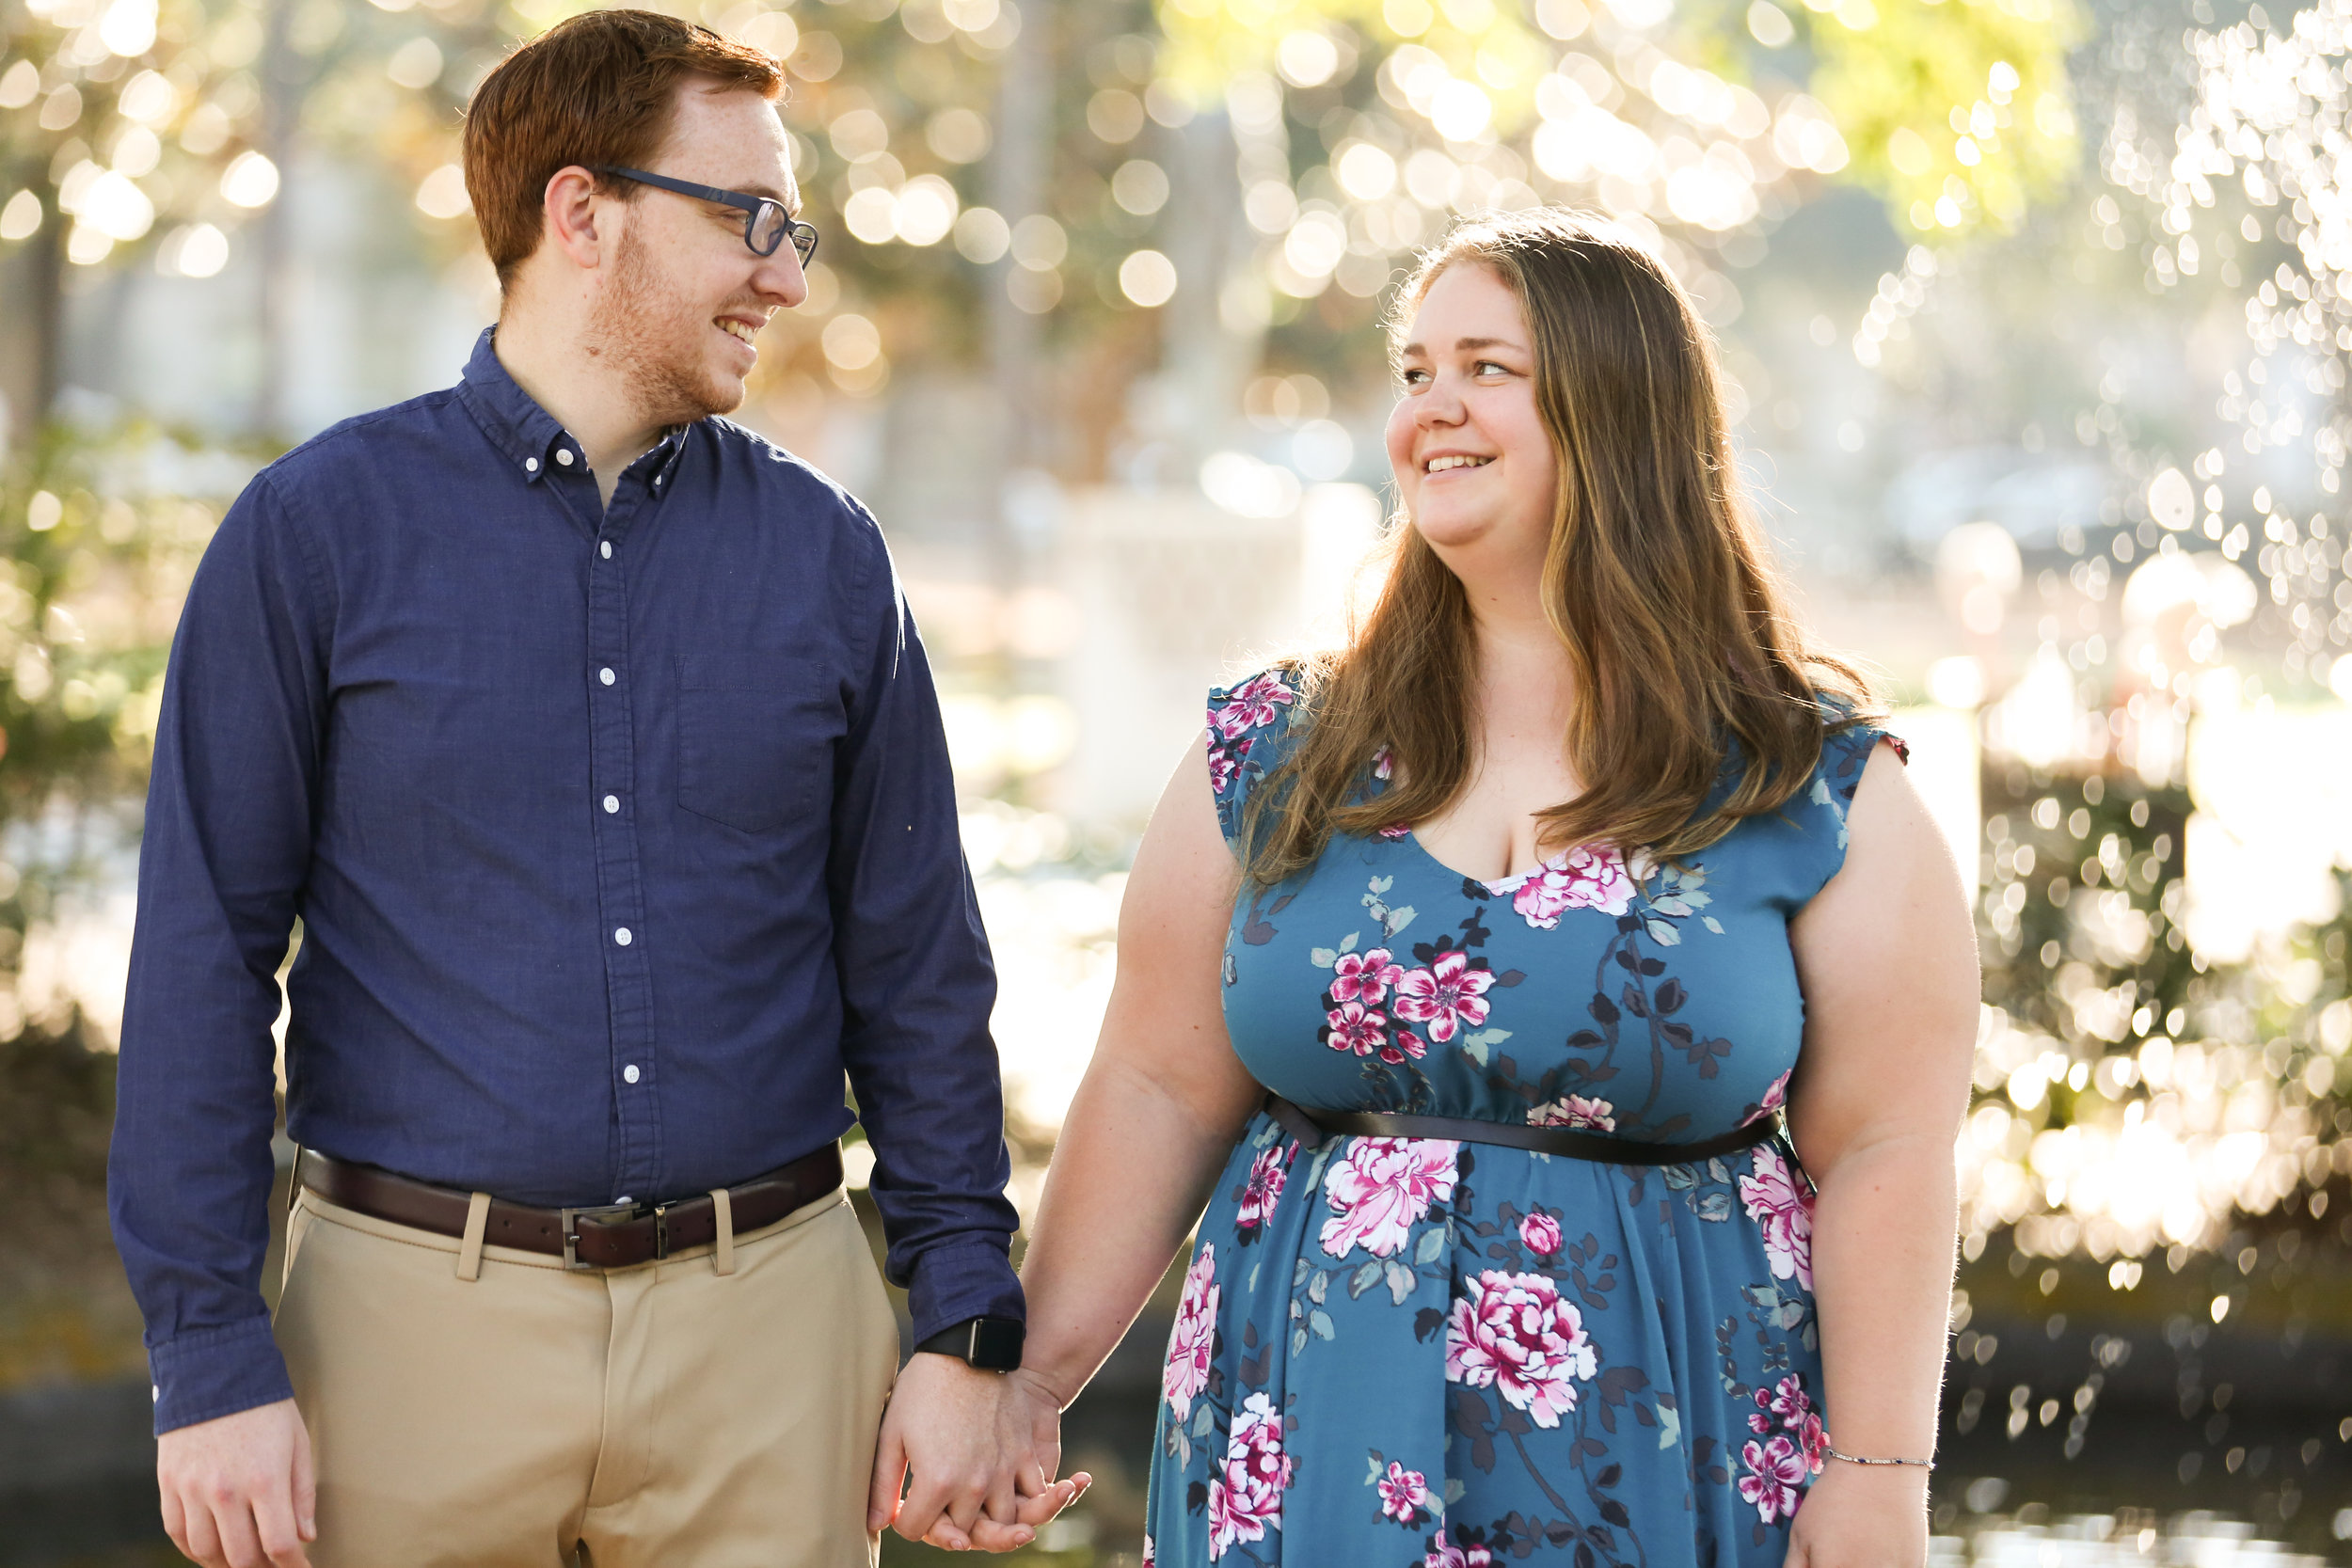 orlando-wedding-photographer-engagement-session-photography-holding-hands.jpg